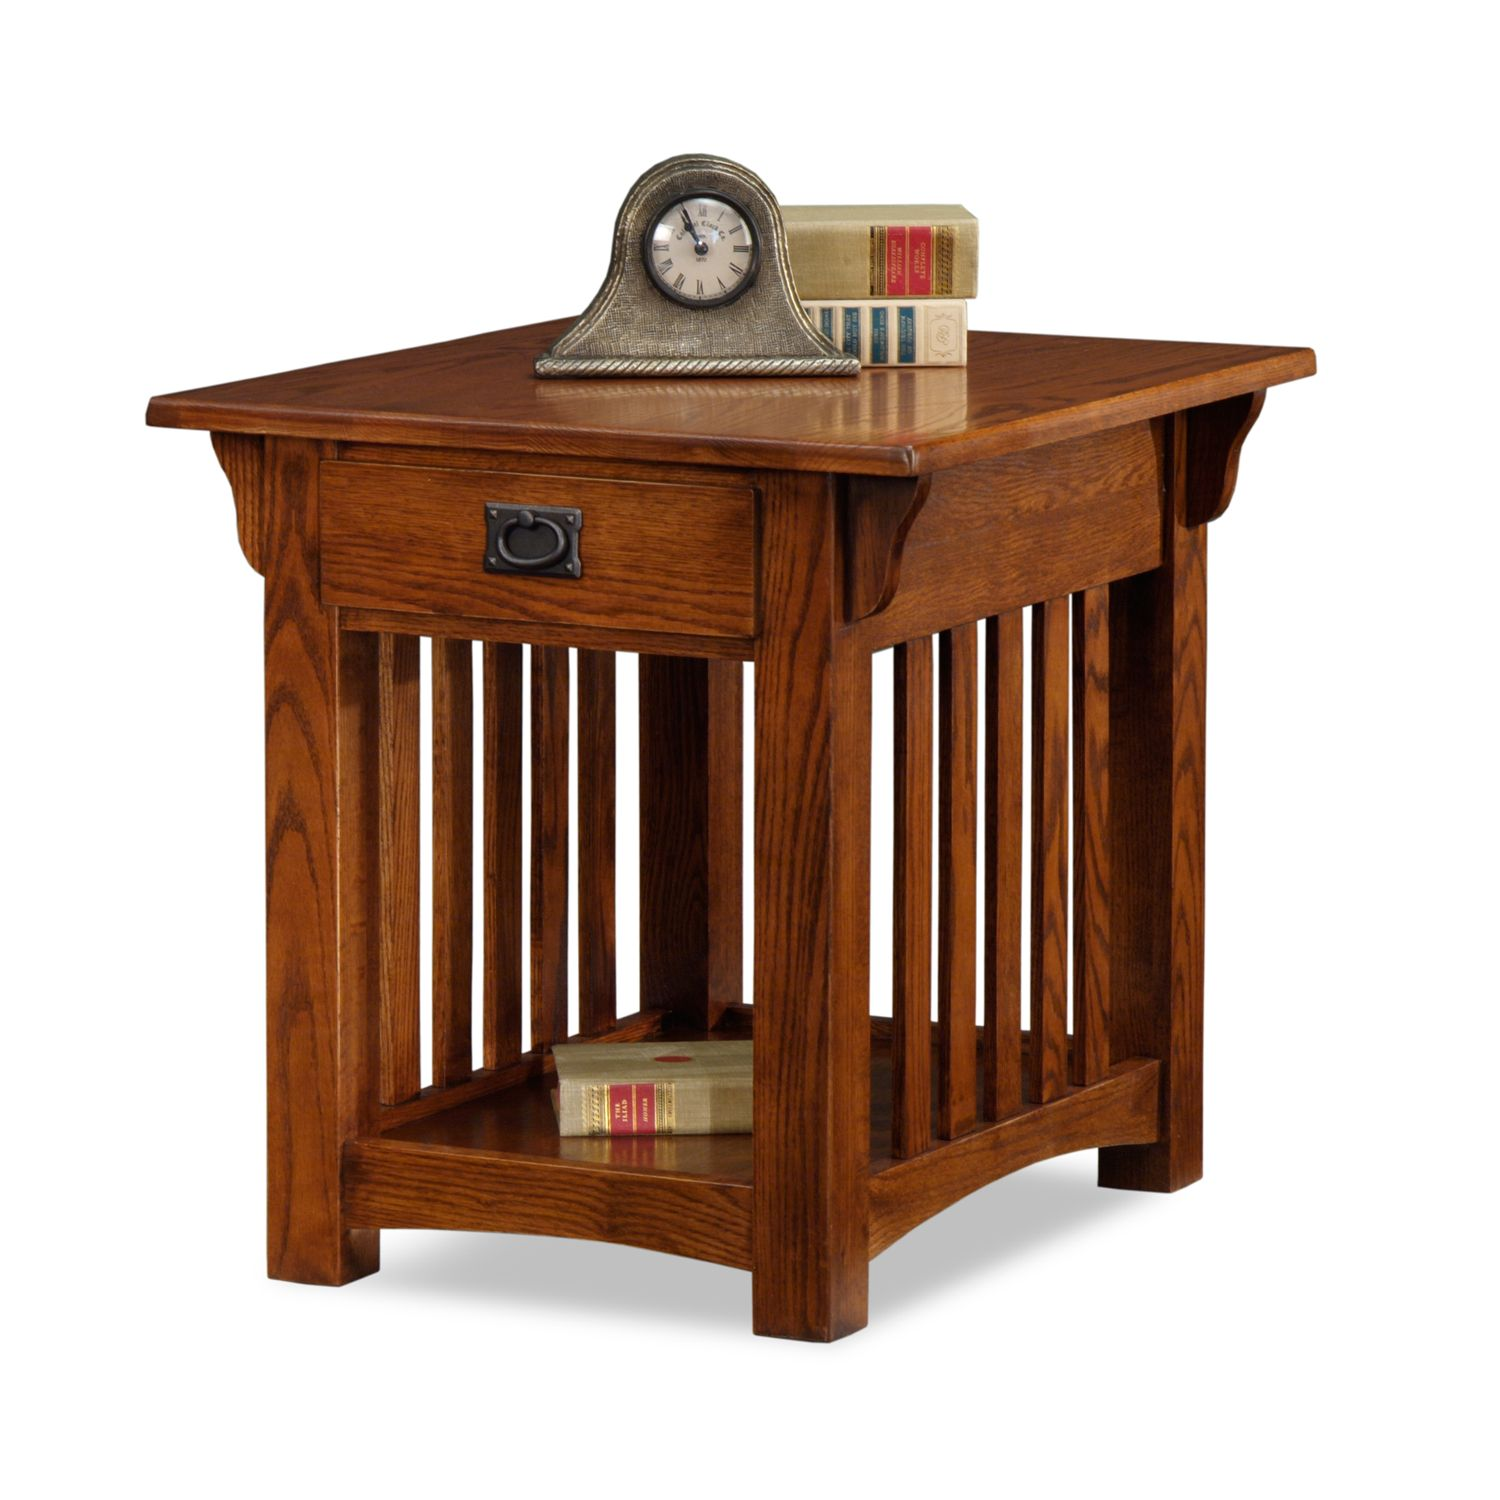 leick furniture mission sienna end table - Leick Furniture